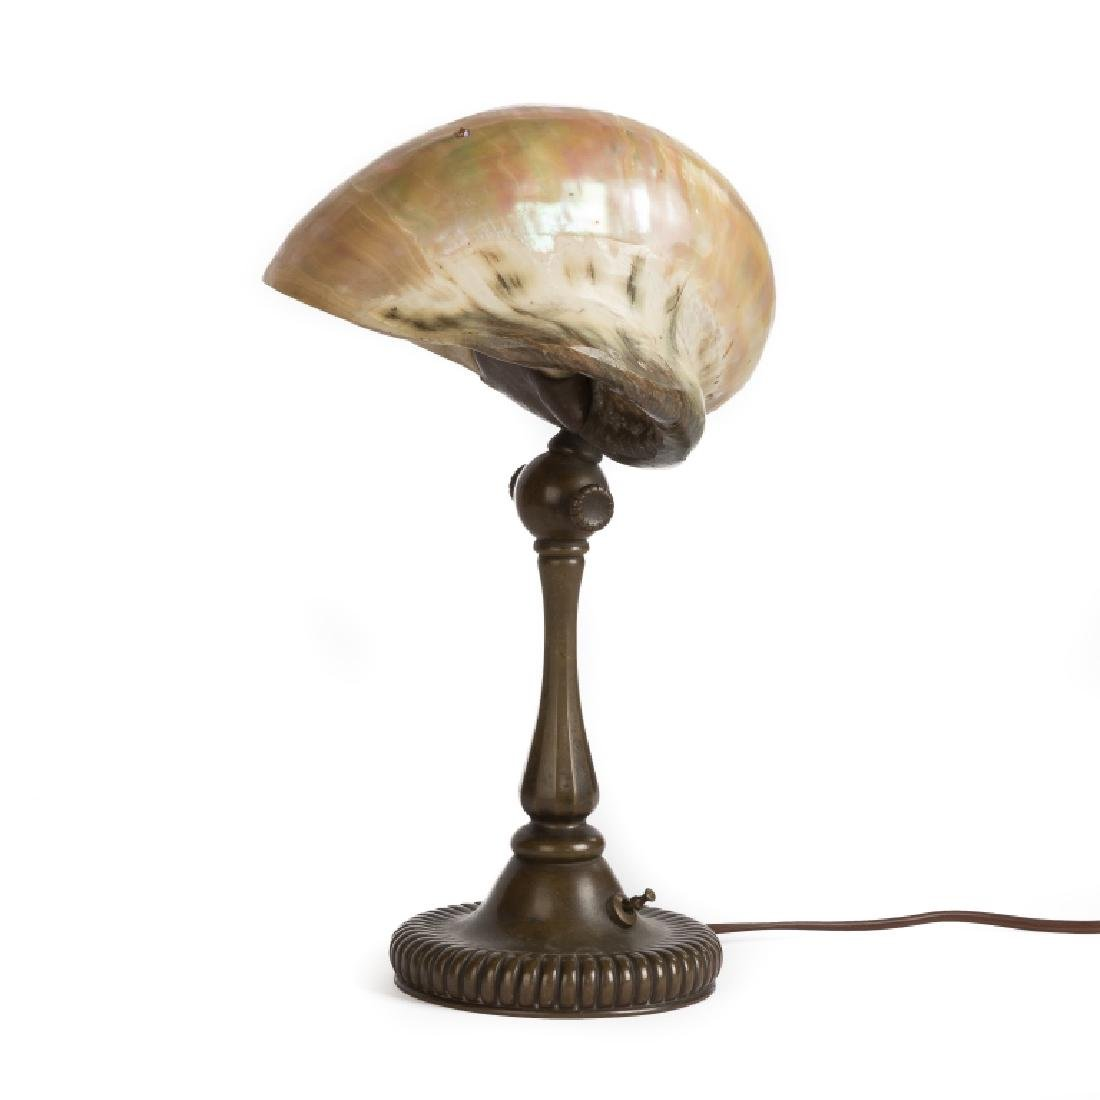 Tiffany Studios Nautilus Shell Desk Lamp